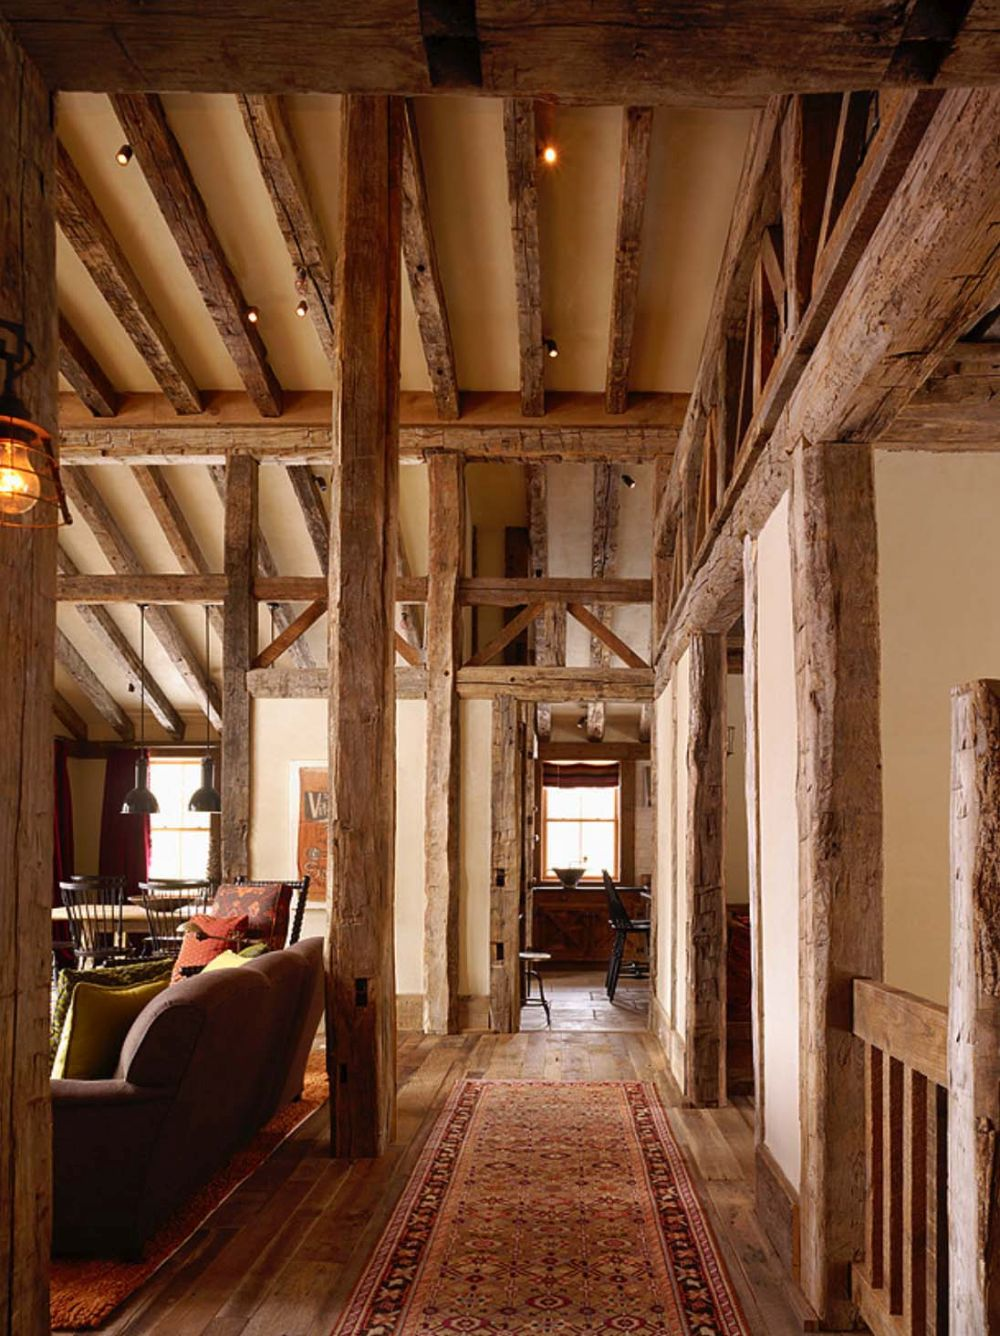 The large beams are made of reclaimed wood and they add a lot of charm to the cabin as a whole